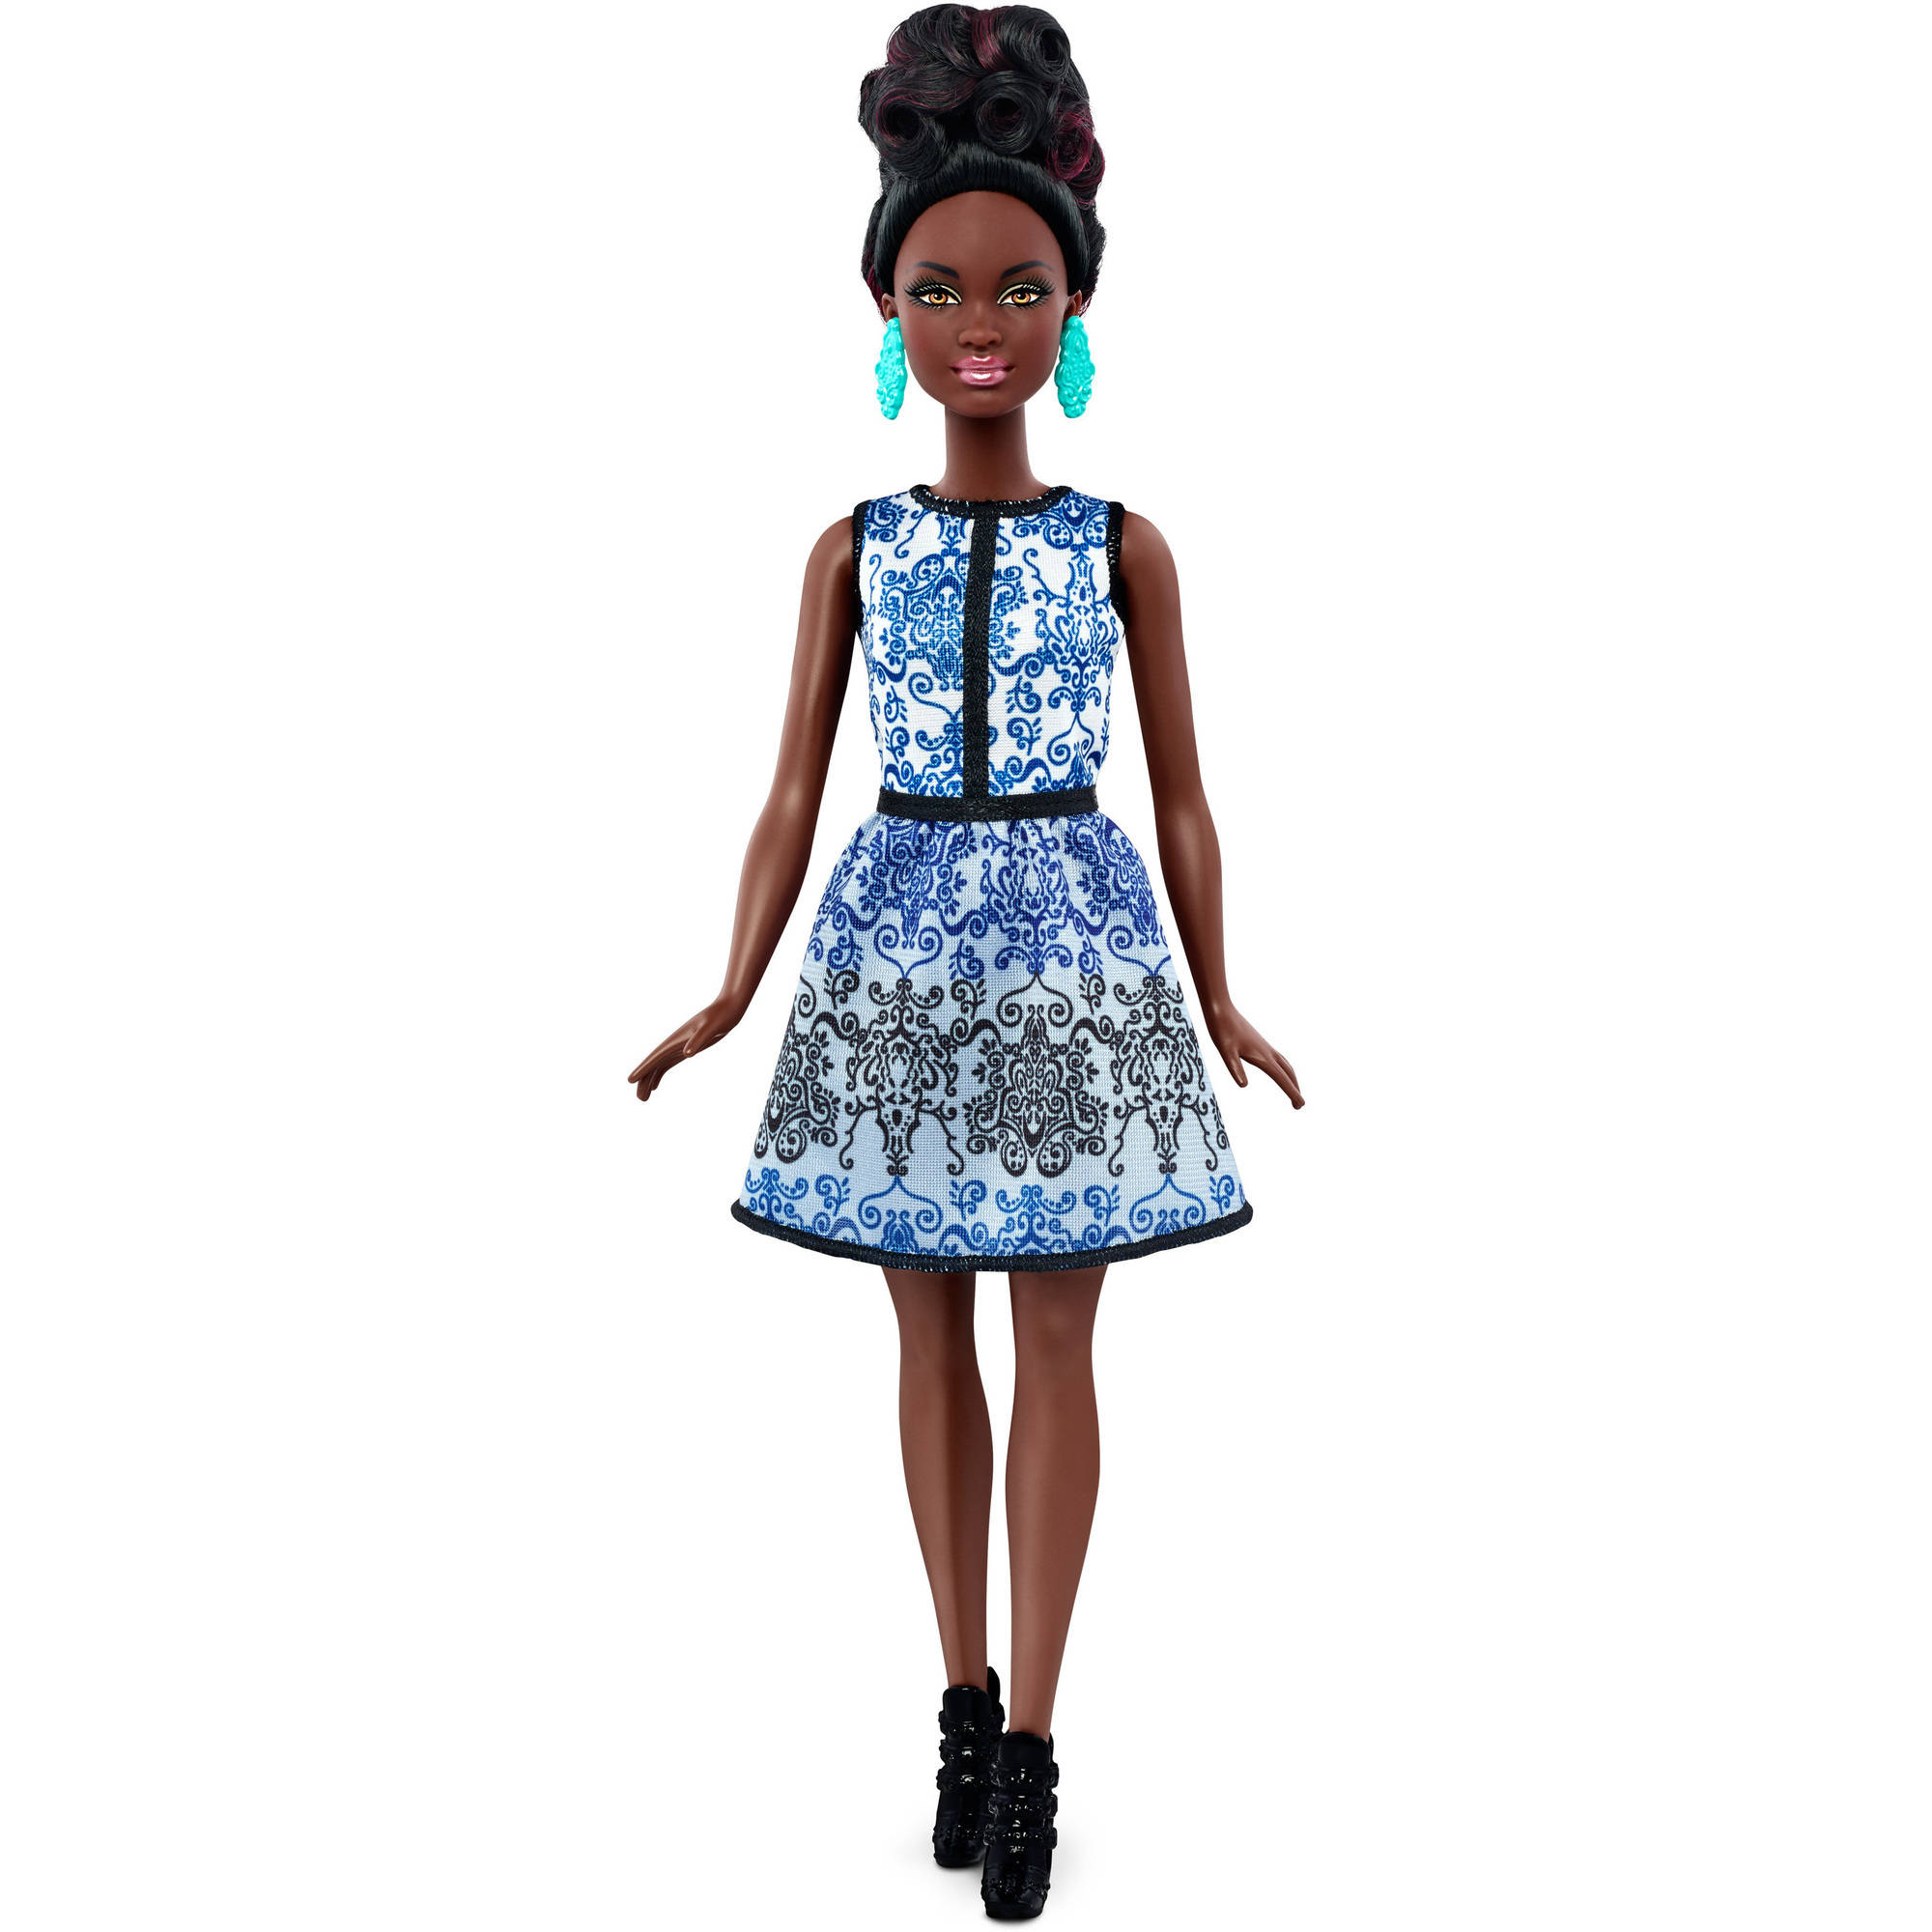 Barbie Fashionistas Doll Blue Brocade, Petite Body, African American by MATTEL INC.